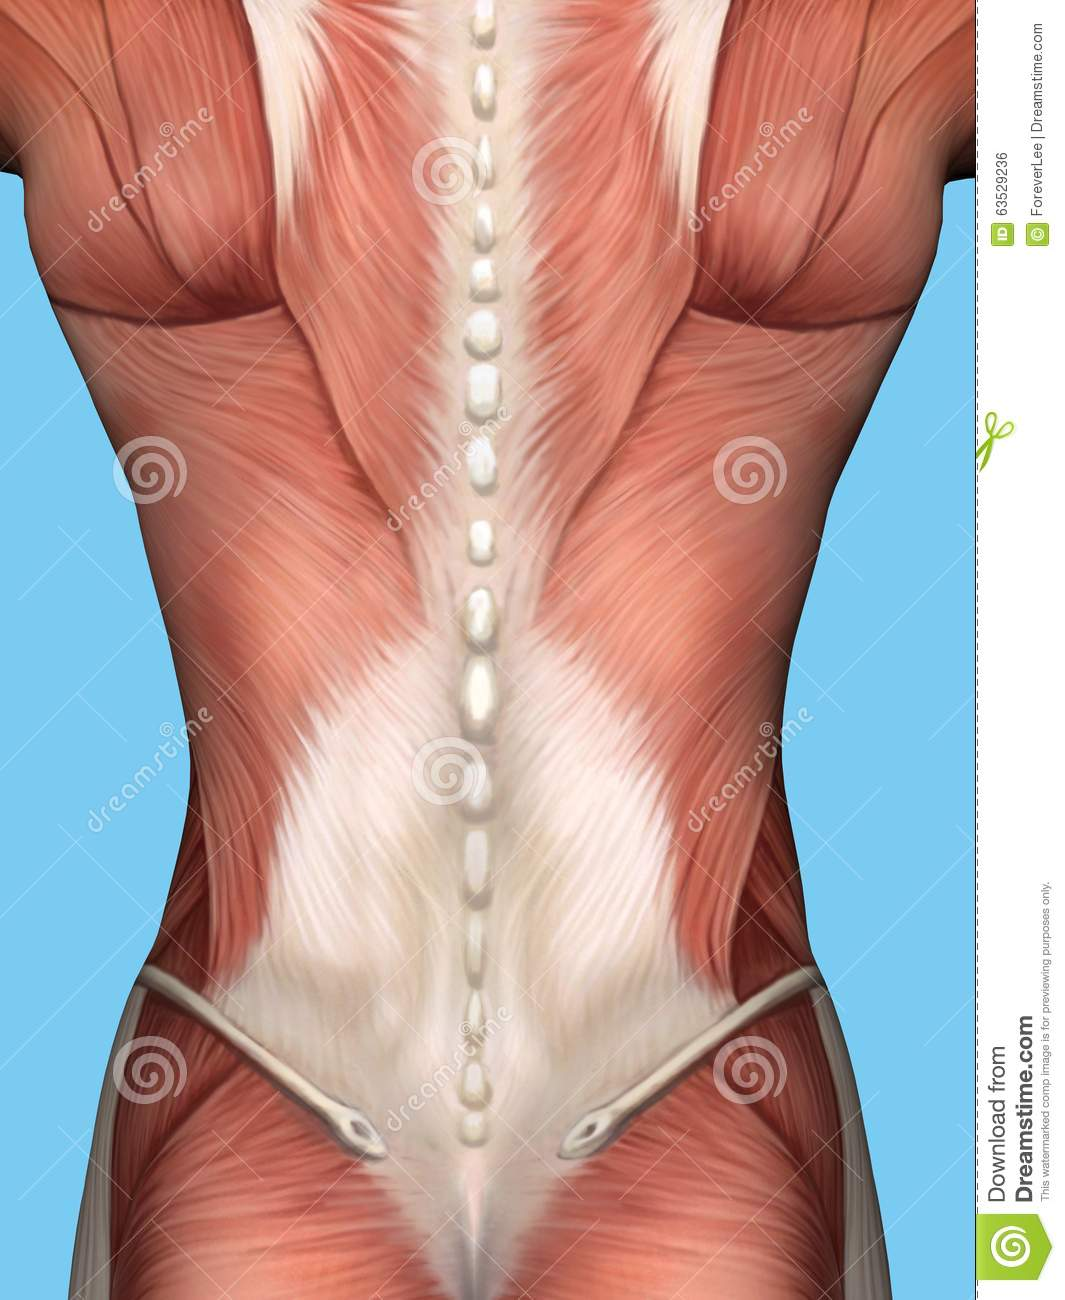 Muscle Anatomy Of Male Back. Stock Illustration - Illustration of ...